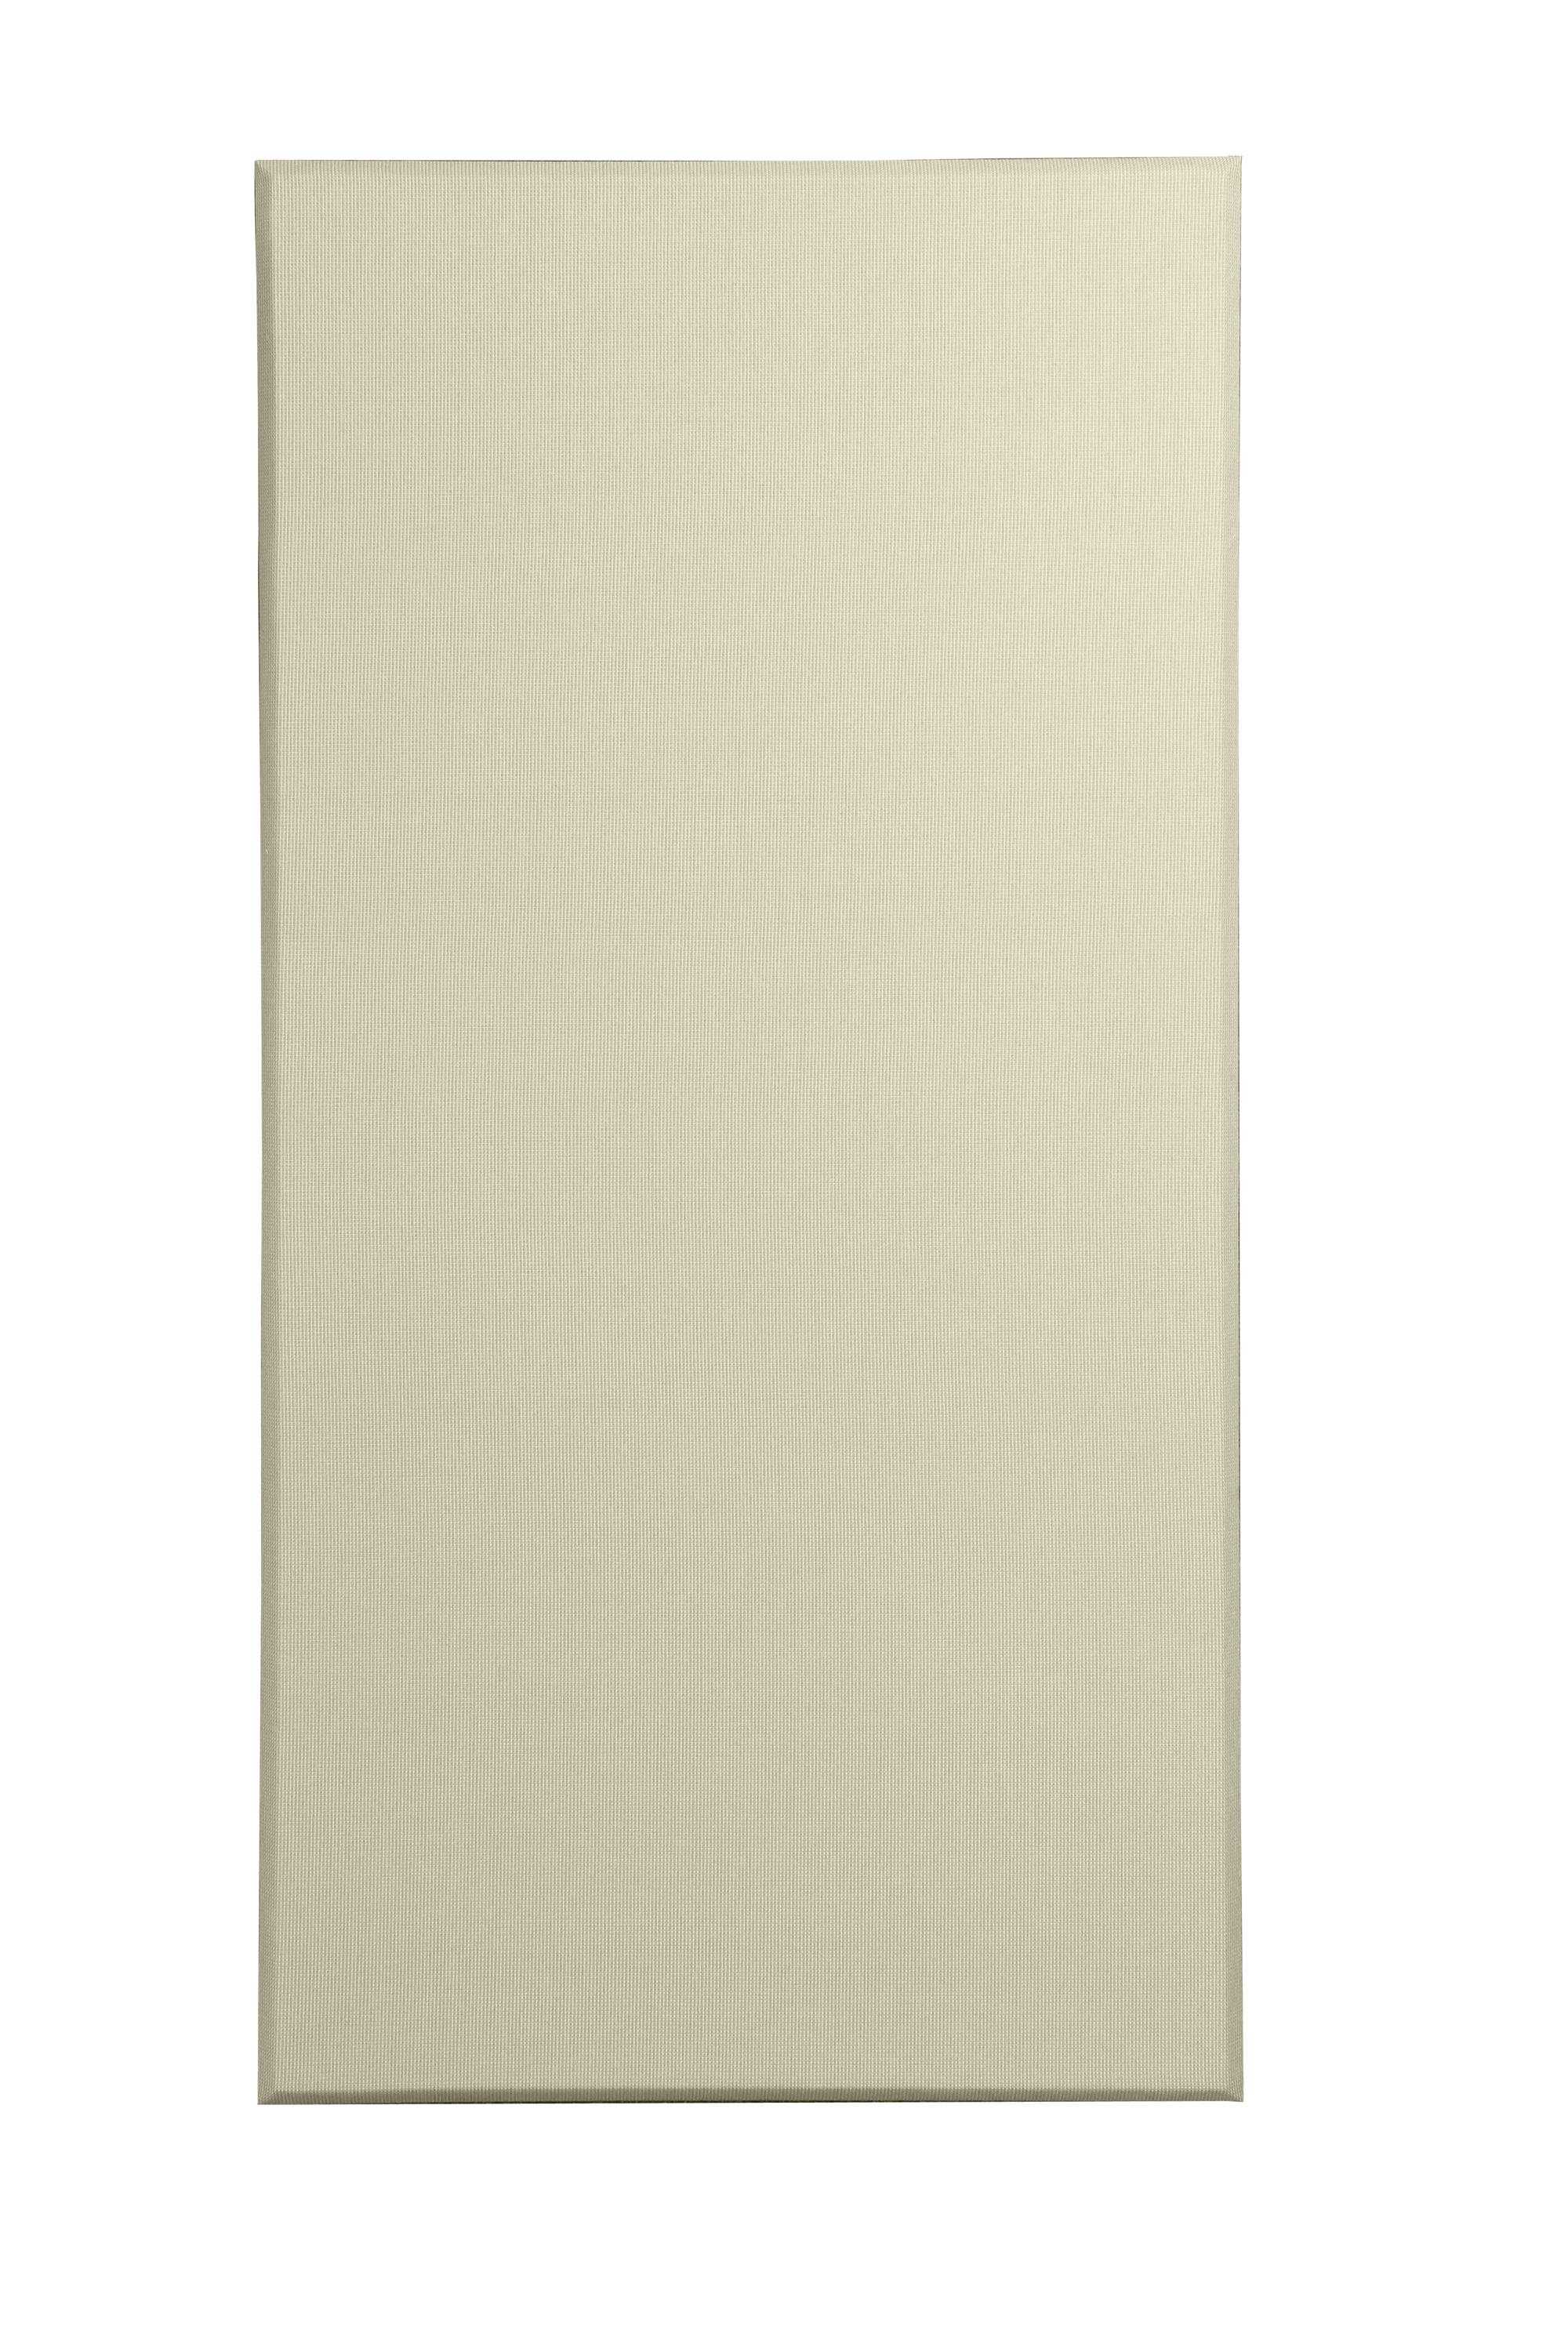 "Primacoustic 2""BROADBAND-PANEL-BV Six-Pack of 24"" x 48"" x 2"" Bevel-Edged Broadband Acoustic Absorption Panels 2""BROADBAND-PANEL-BV"